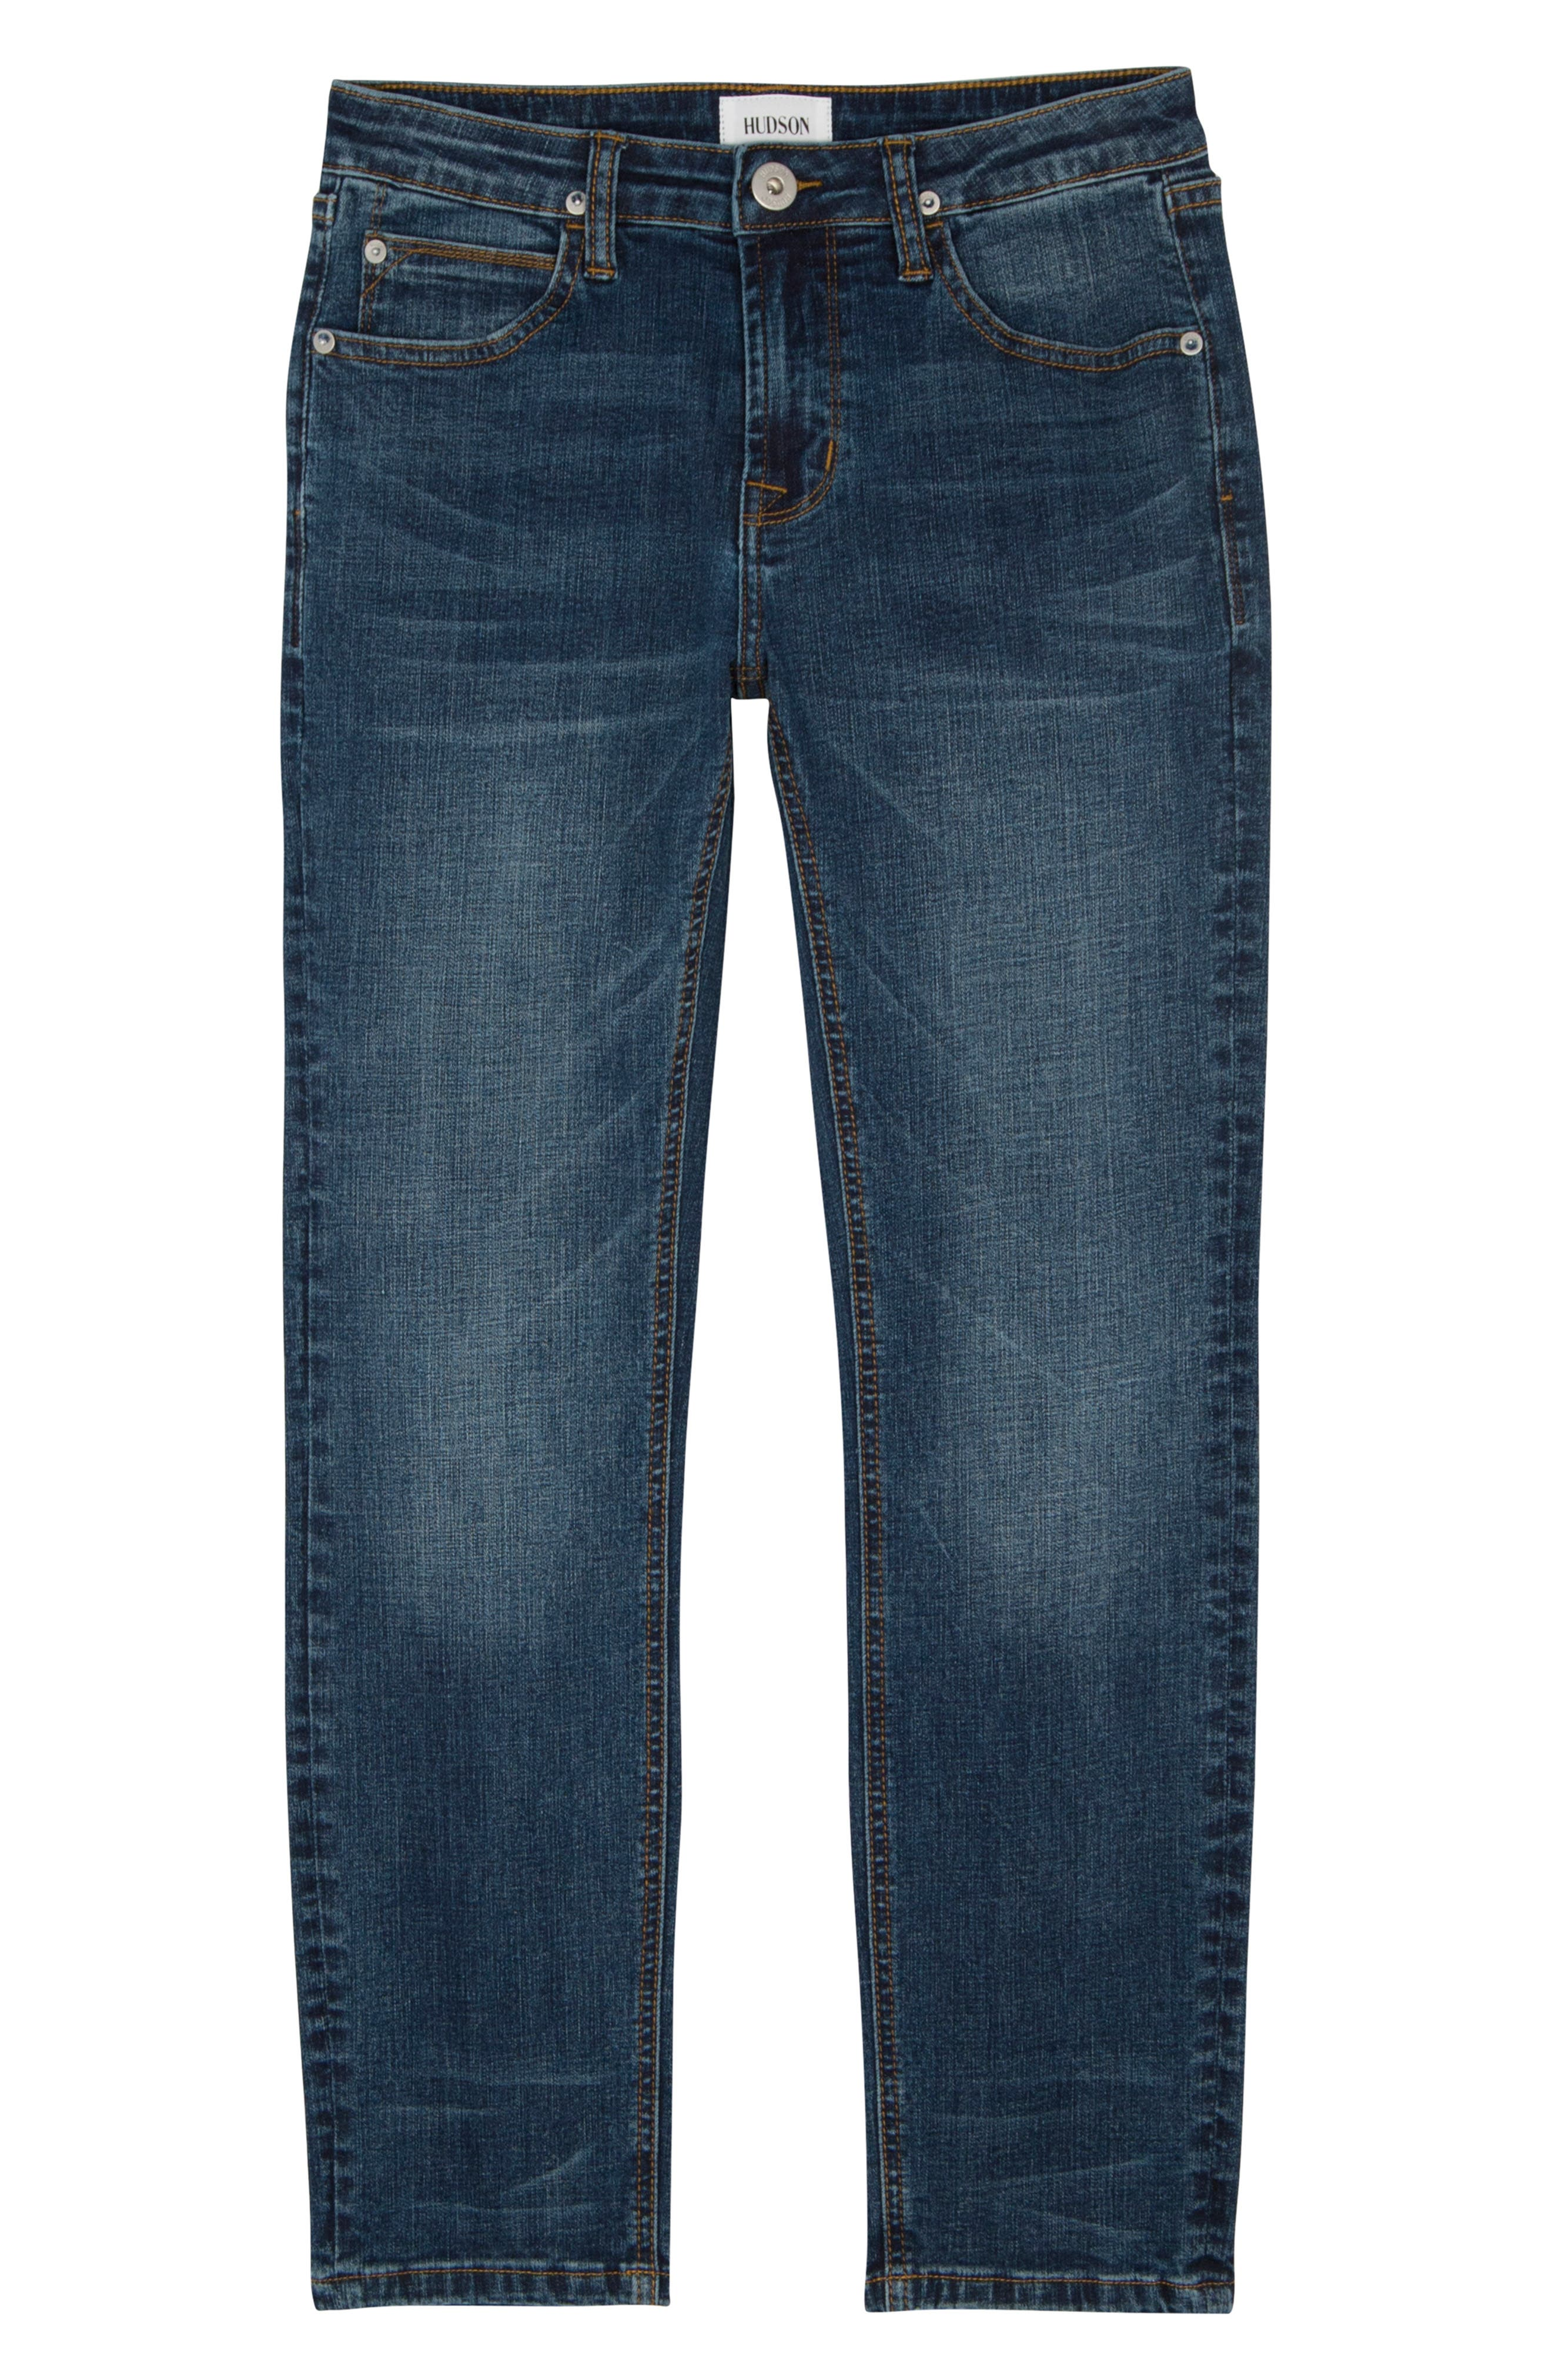 Jude Skinny Jeans,                             Main thumbnail 1, color,                             LEGEND WASH GRAPH